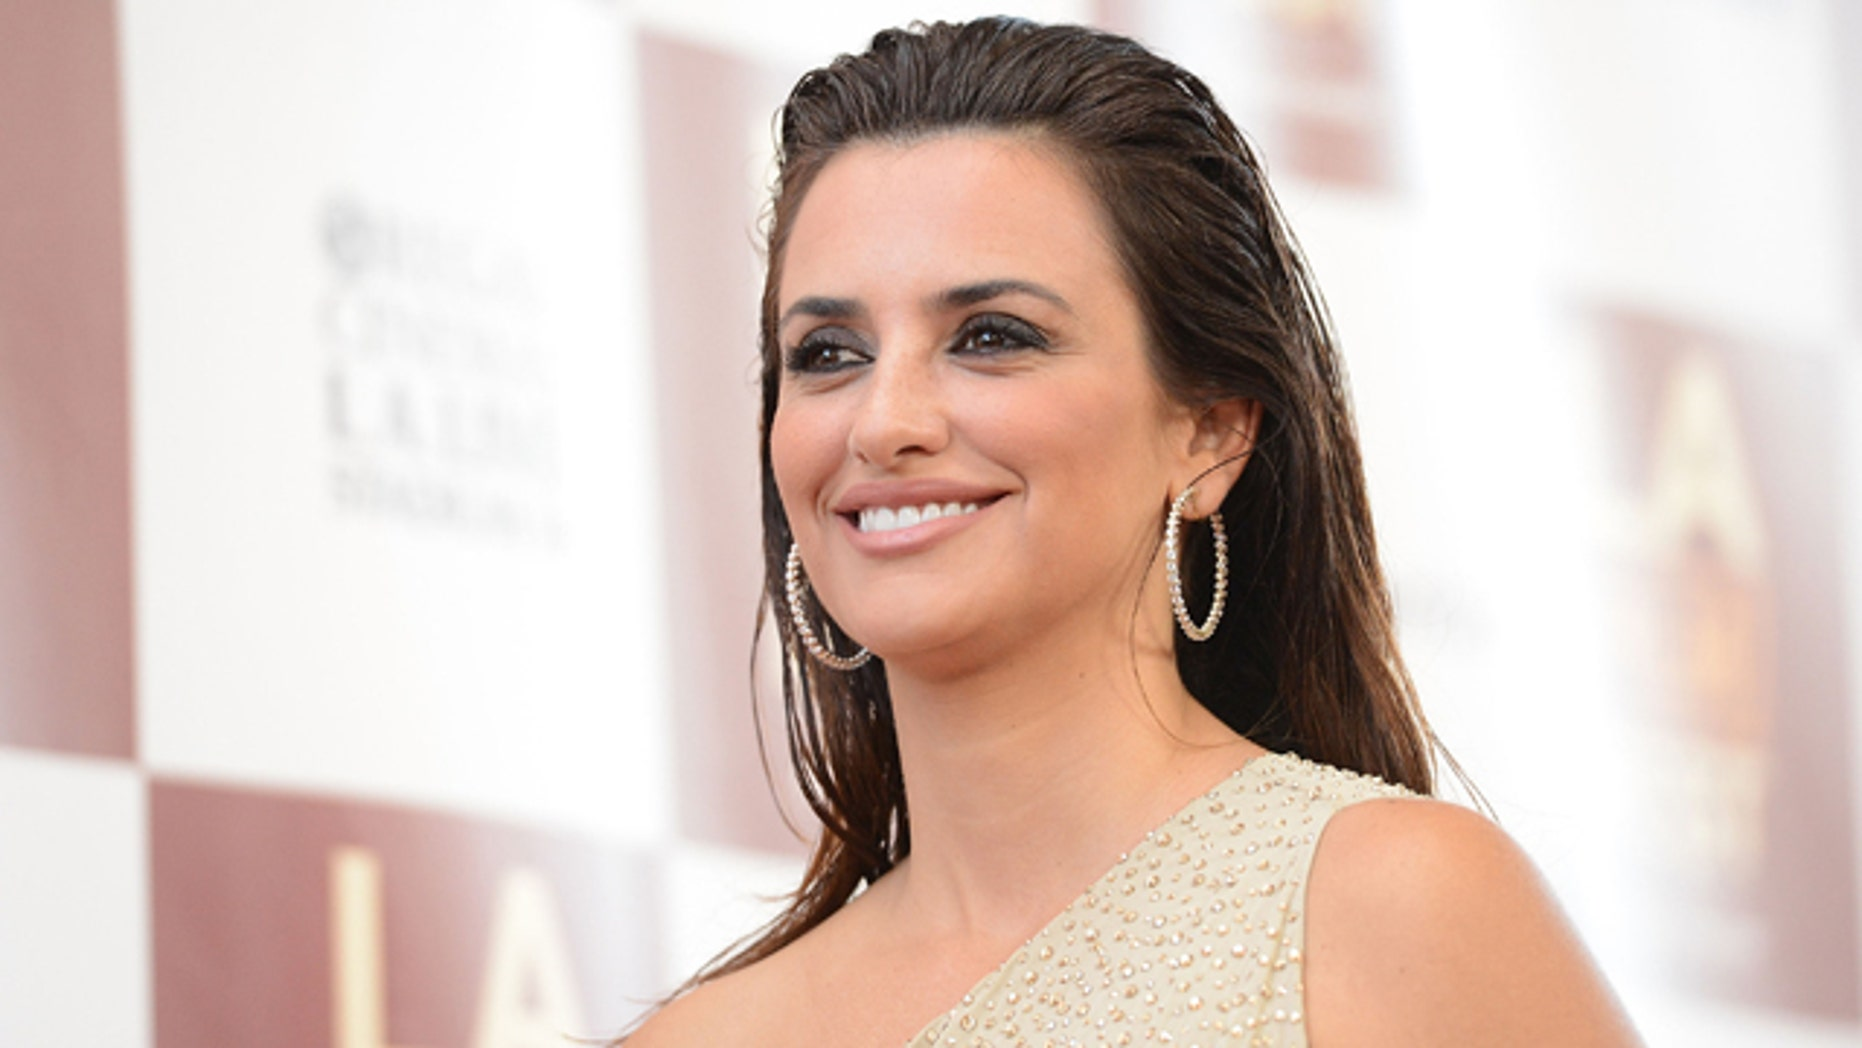 LOS ANGELES, CA - JUNE 14:  Actress Penelope Cruz arrives at Film Independent's 2012 Los Angeles Film Festival Premiere of Sony Pictures Classics' 'To Rome With Love' at Regal Cinemas L.A. LIVE Stadium 14 on June 14, 2012 in Los Angeles, California.  (Photo by Jason Merritt/Getty Images)